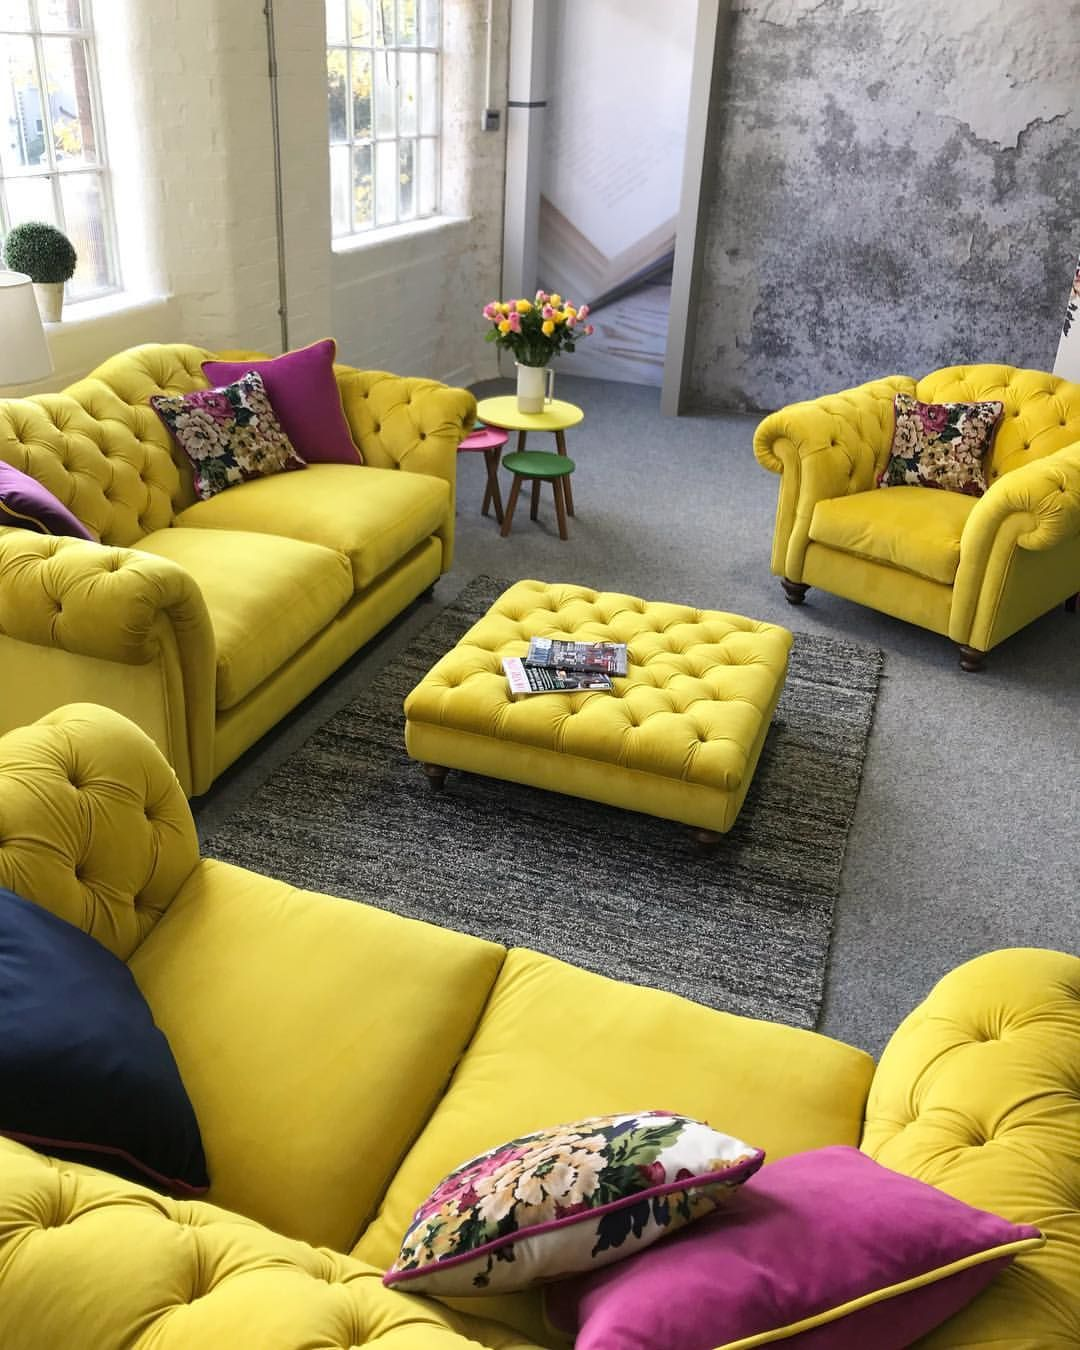 Joules Sofas Colourful Living Room Decor Home Decor Living Room Decor